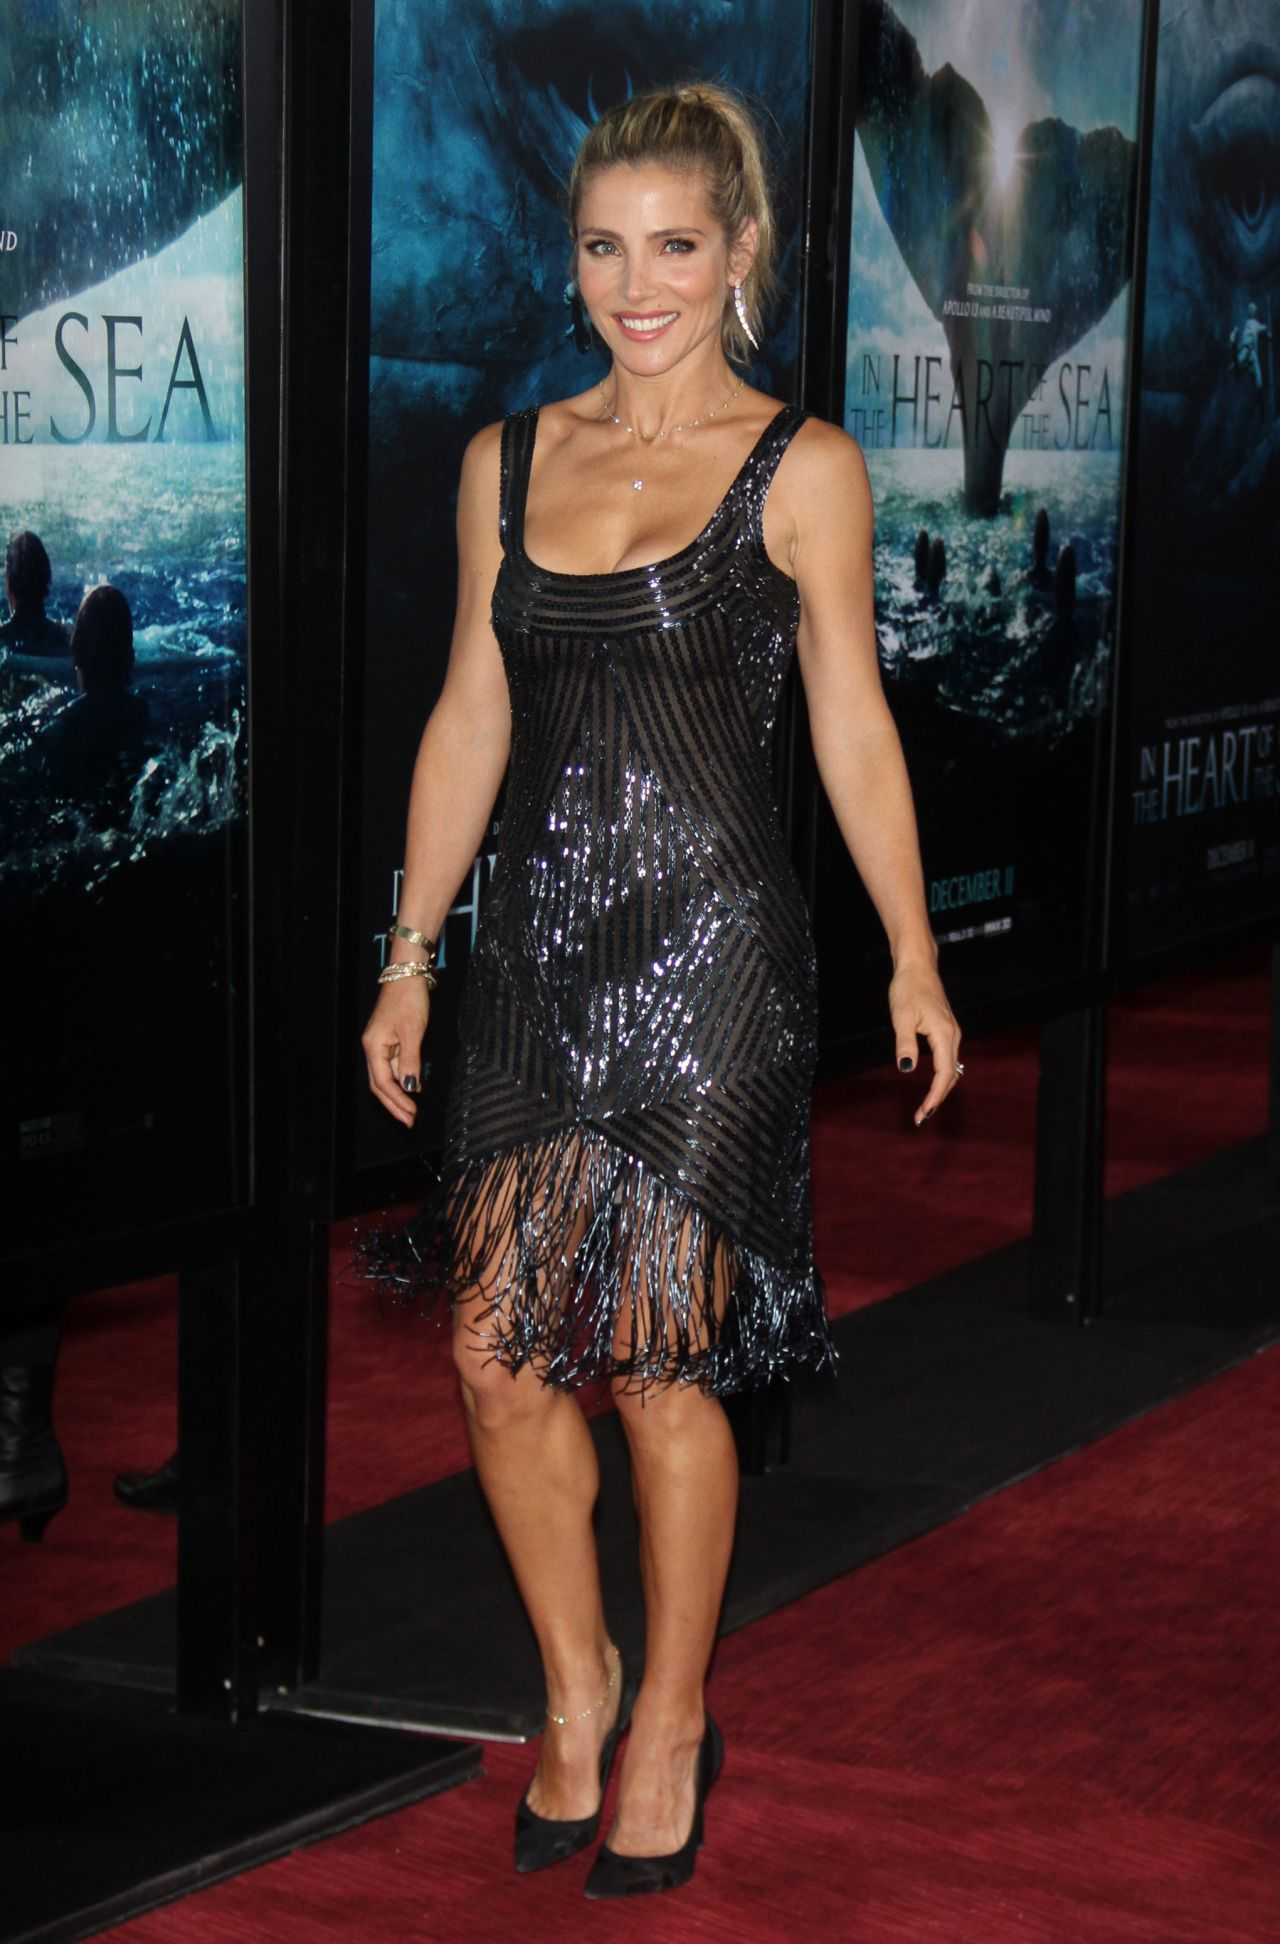 Elsa Pataky In The Heart Of The Sea Premiere At The